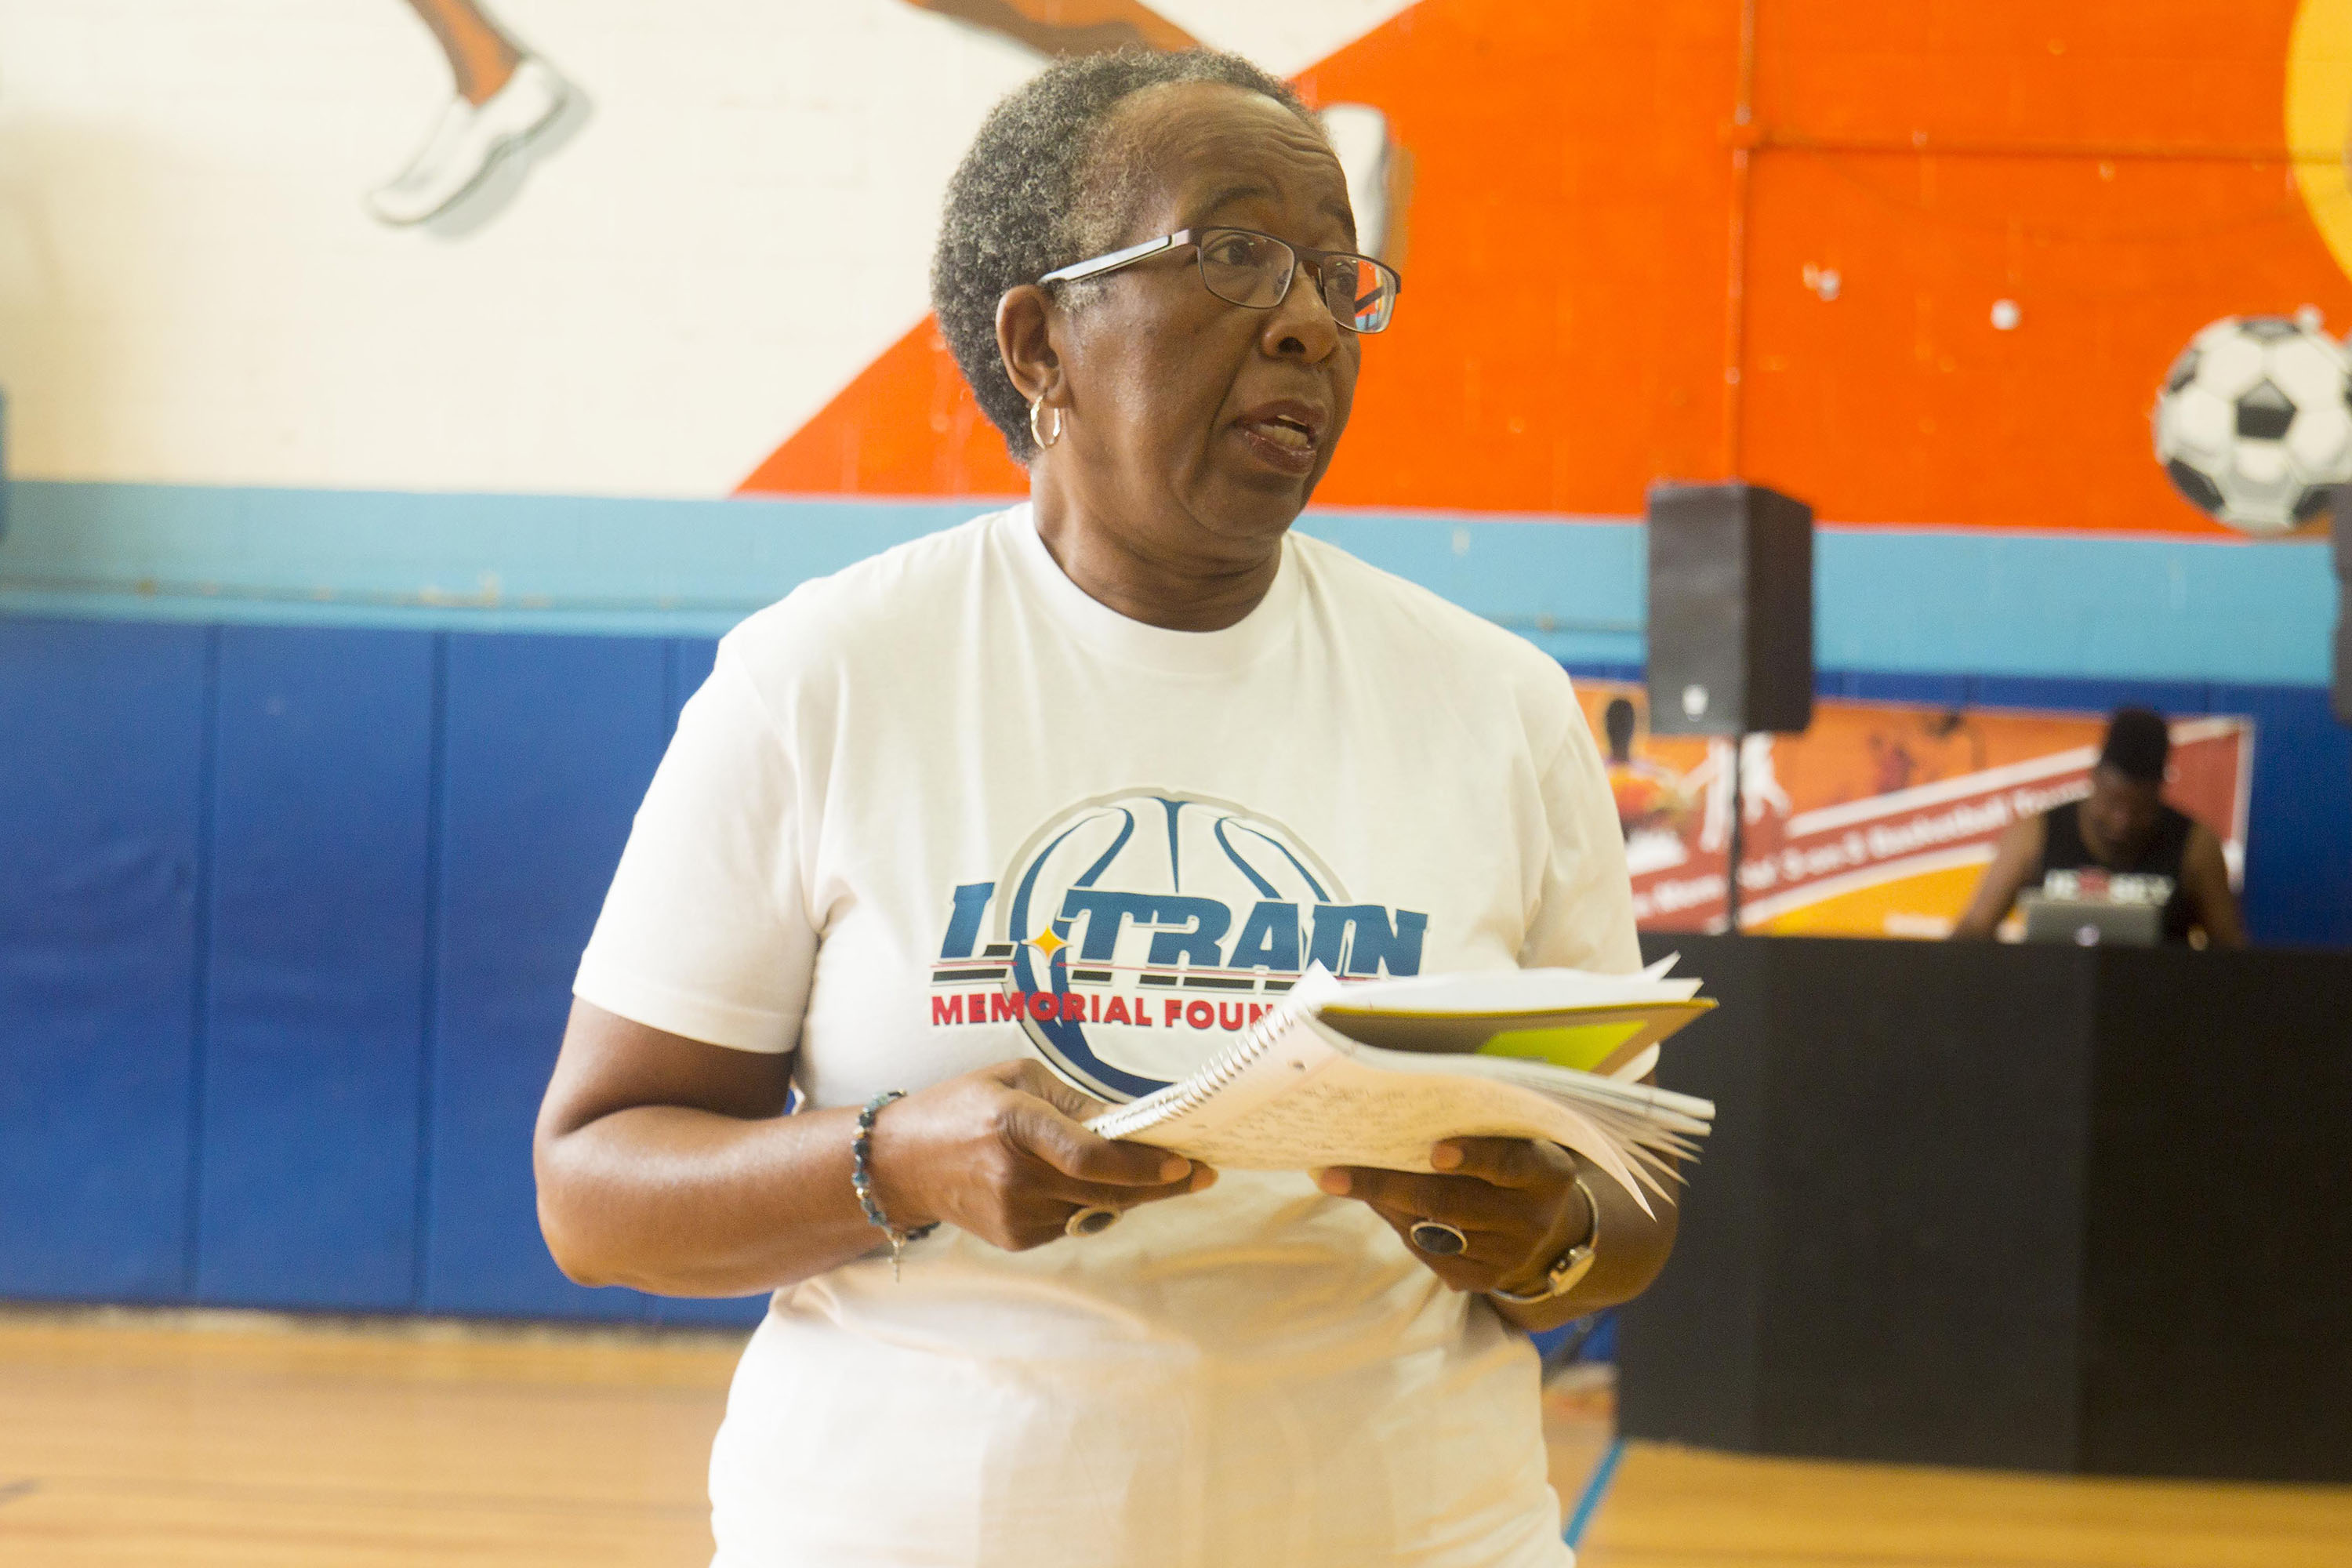 L-Train Memorial Foundation - Annual 3-On-3 Tournament (Boys and Girls Club Union, NJ) 08-07-16_0039